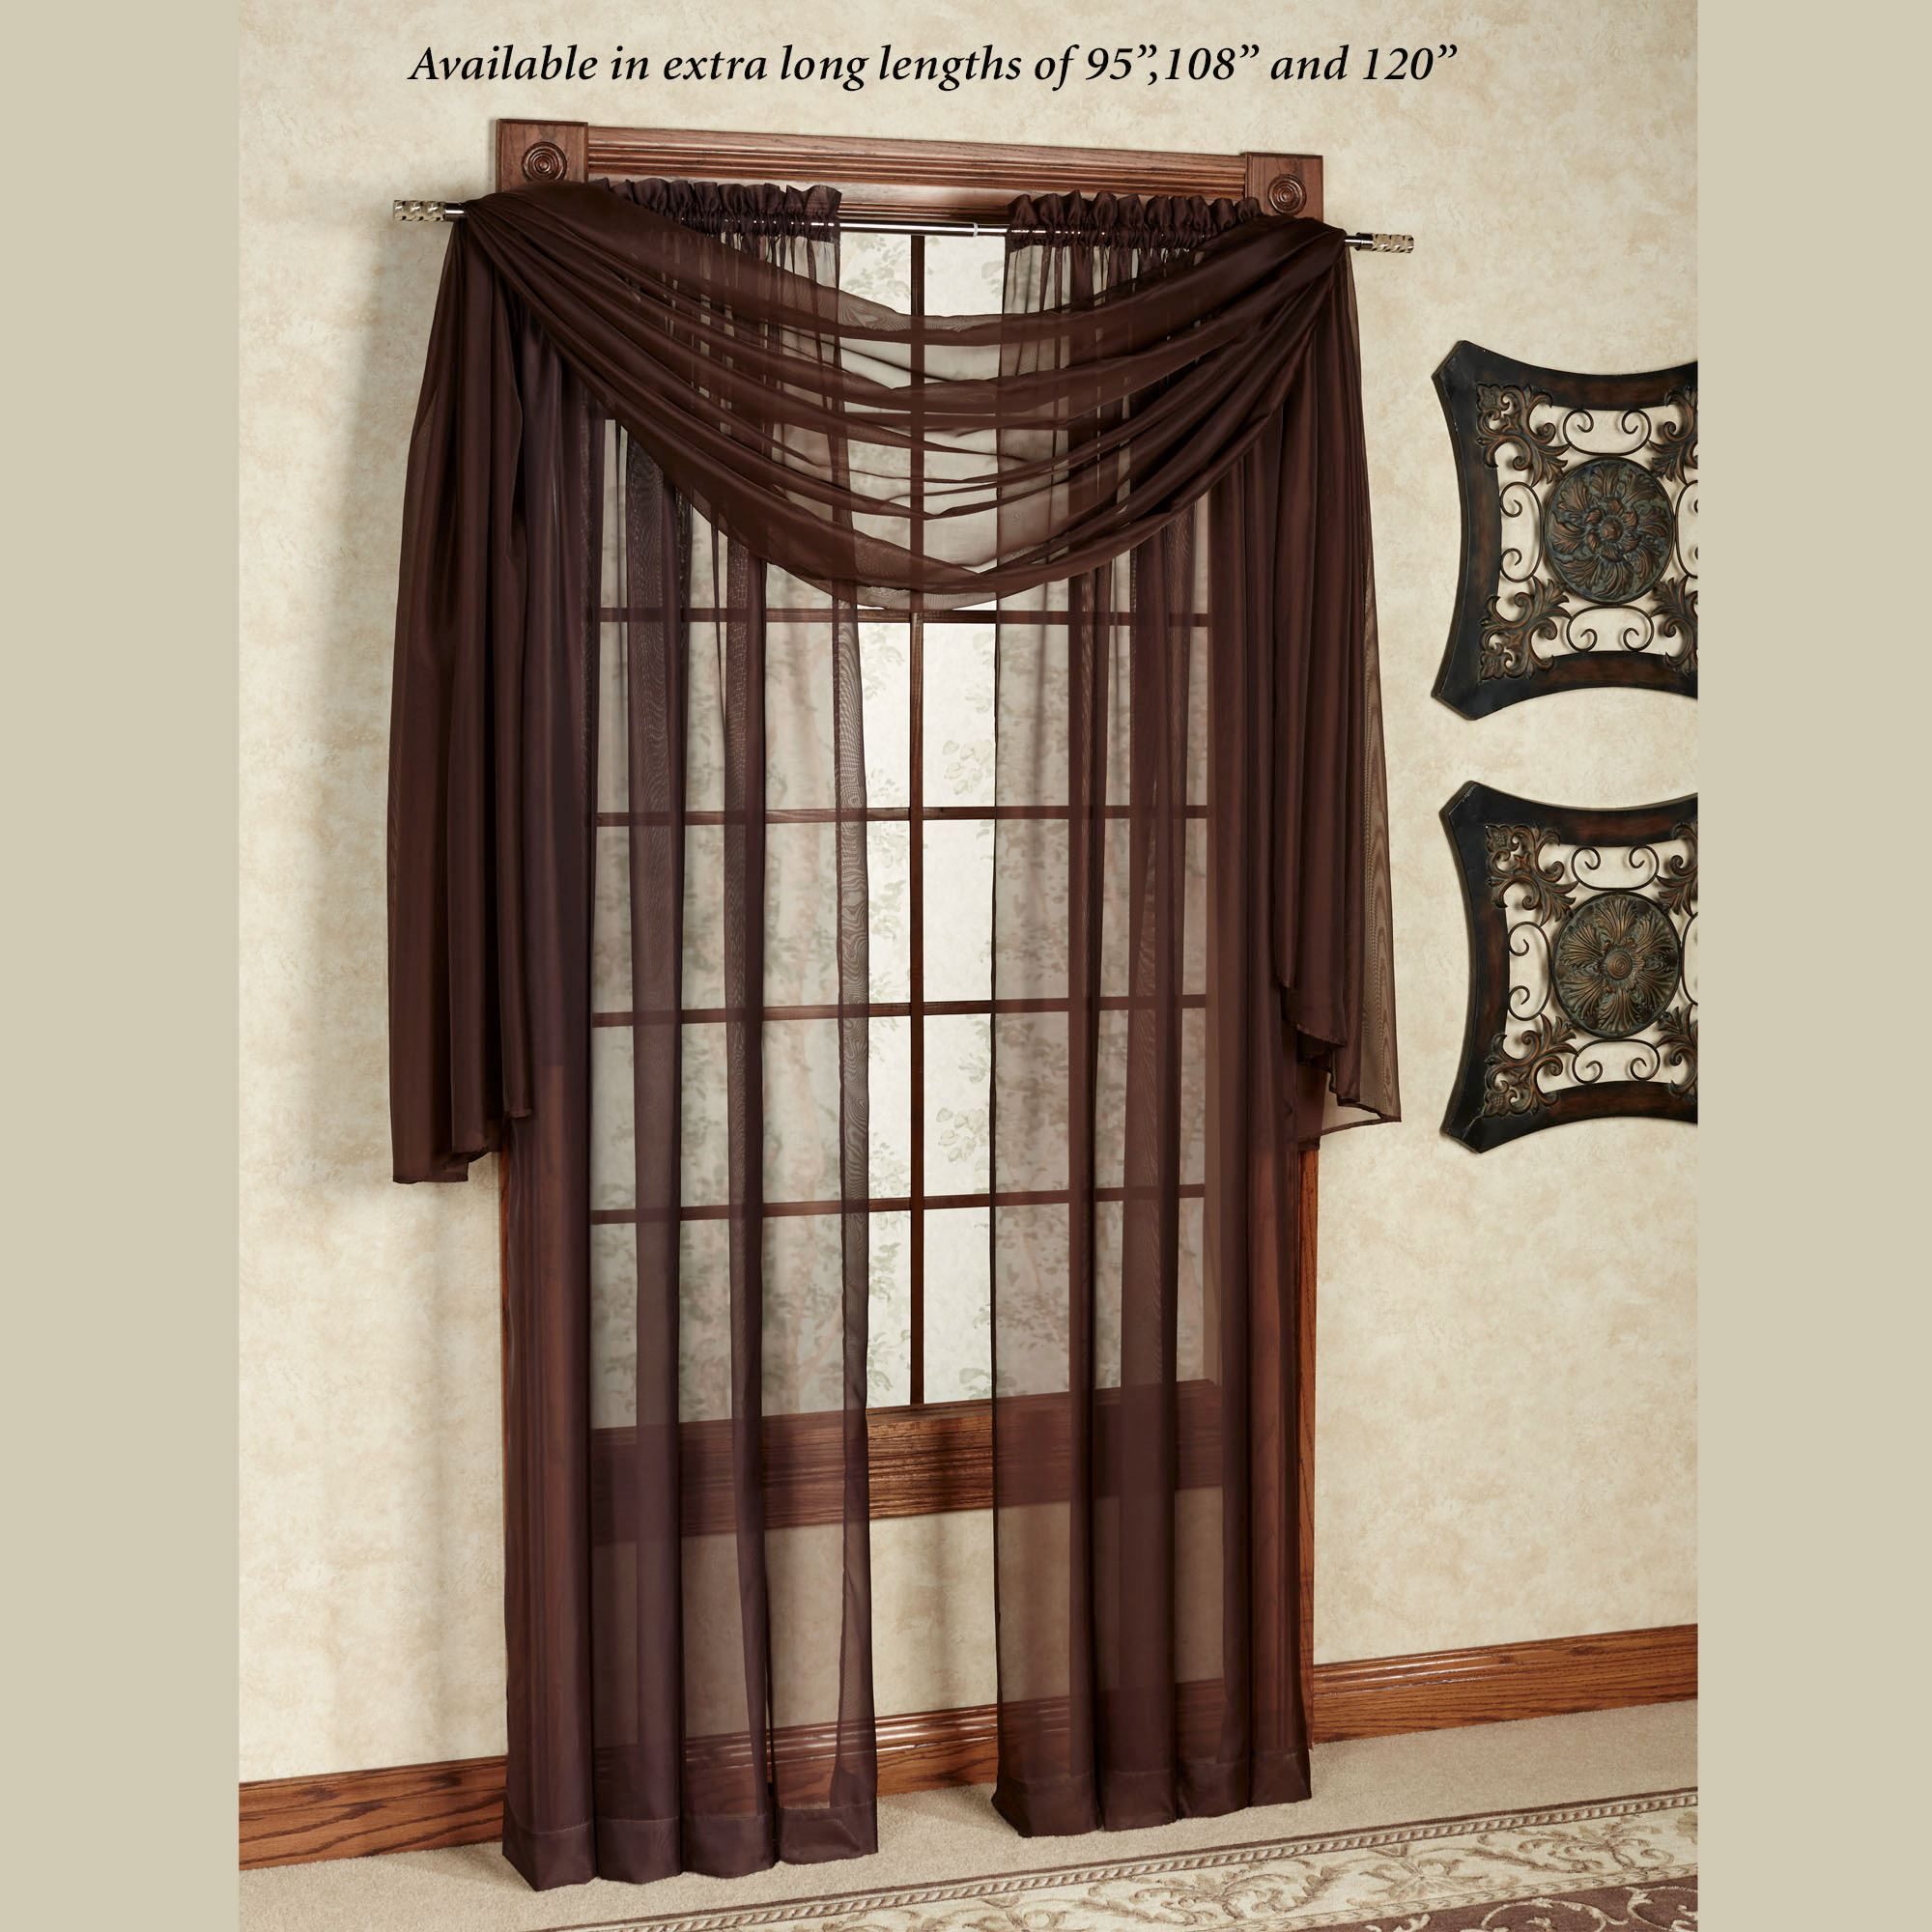 Monte Carlo Sheer Voile Window Treatment Intended For Sheer Voile Waterfall Ruffled Tier Single Curtain Panels (View 18 of 20)